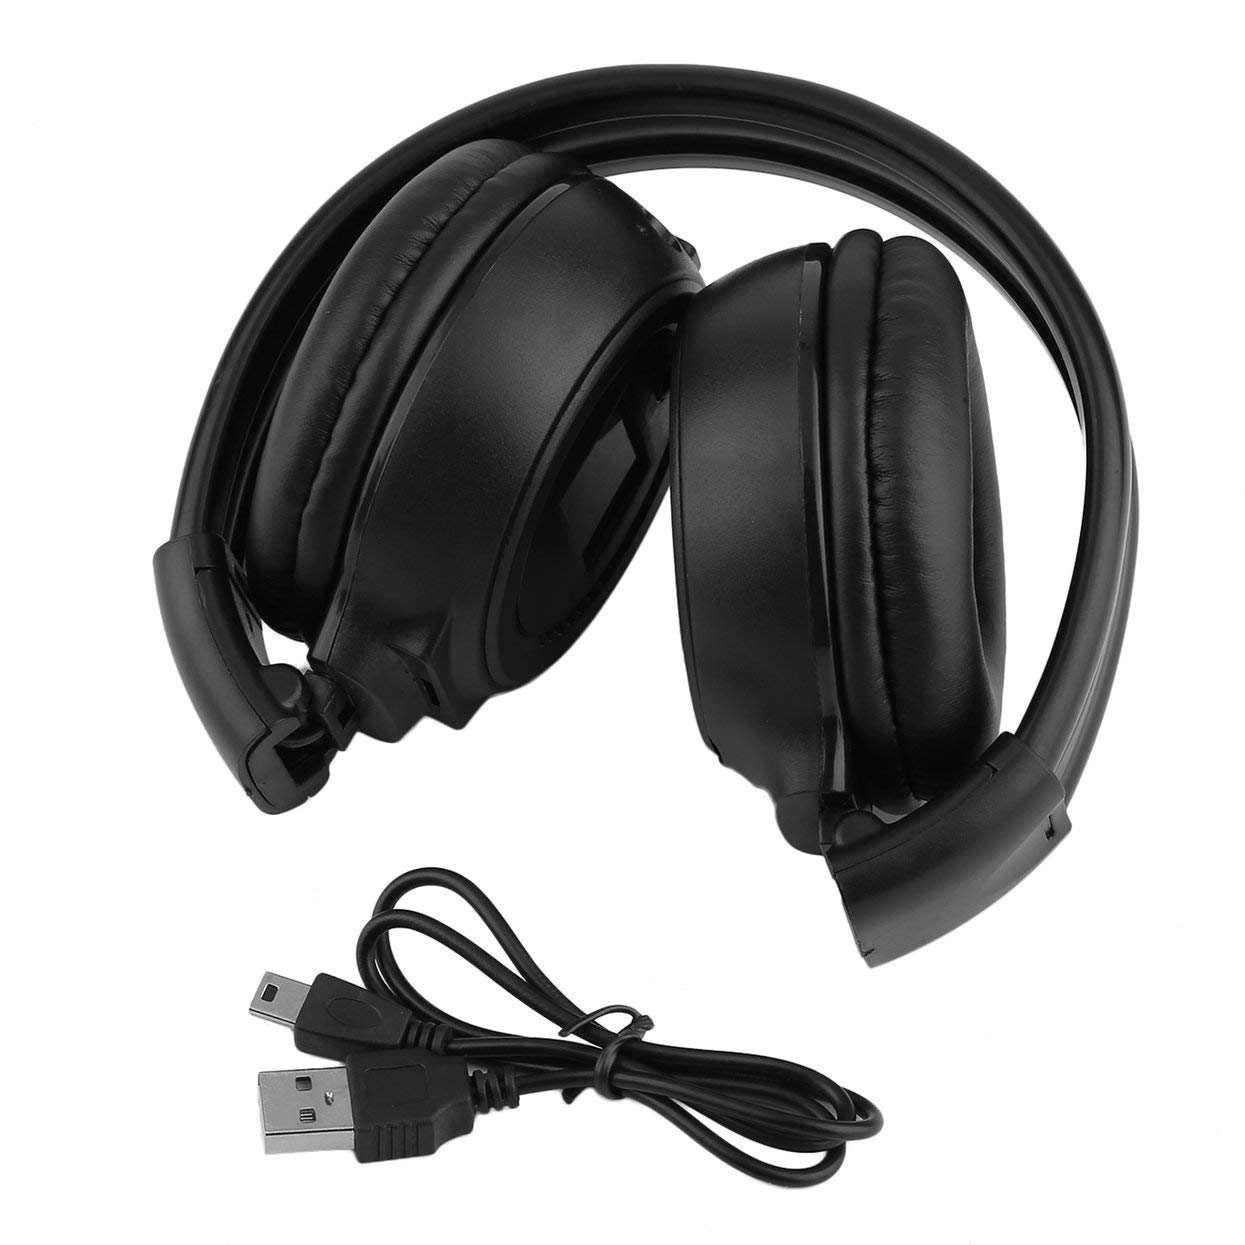 Bluetooth 4.1 Wireless Over-Ear Headphone Stereo Music Headset Voice Control Earphone for Phone Tablet N65